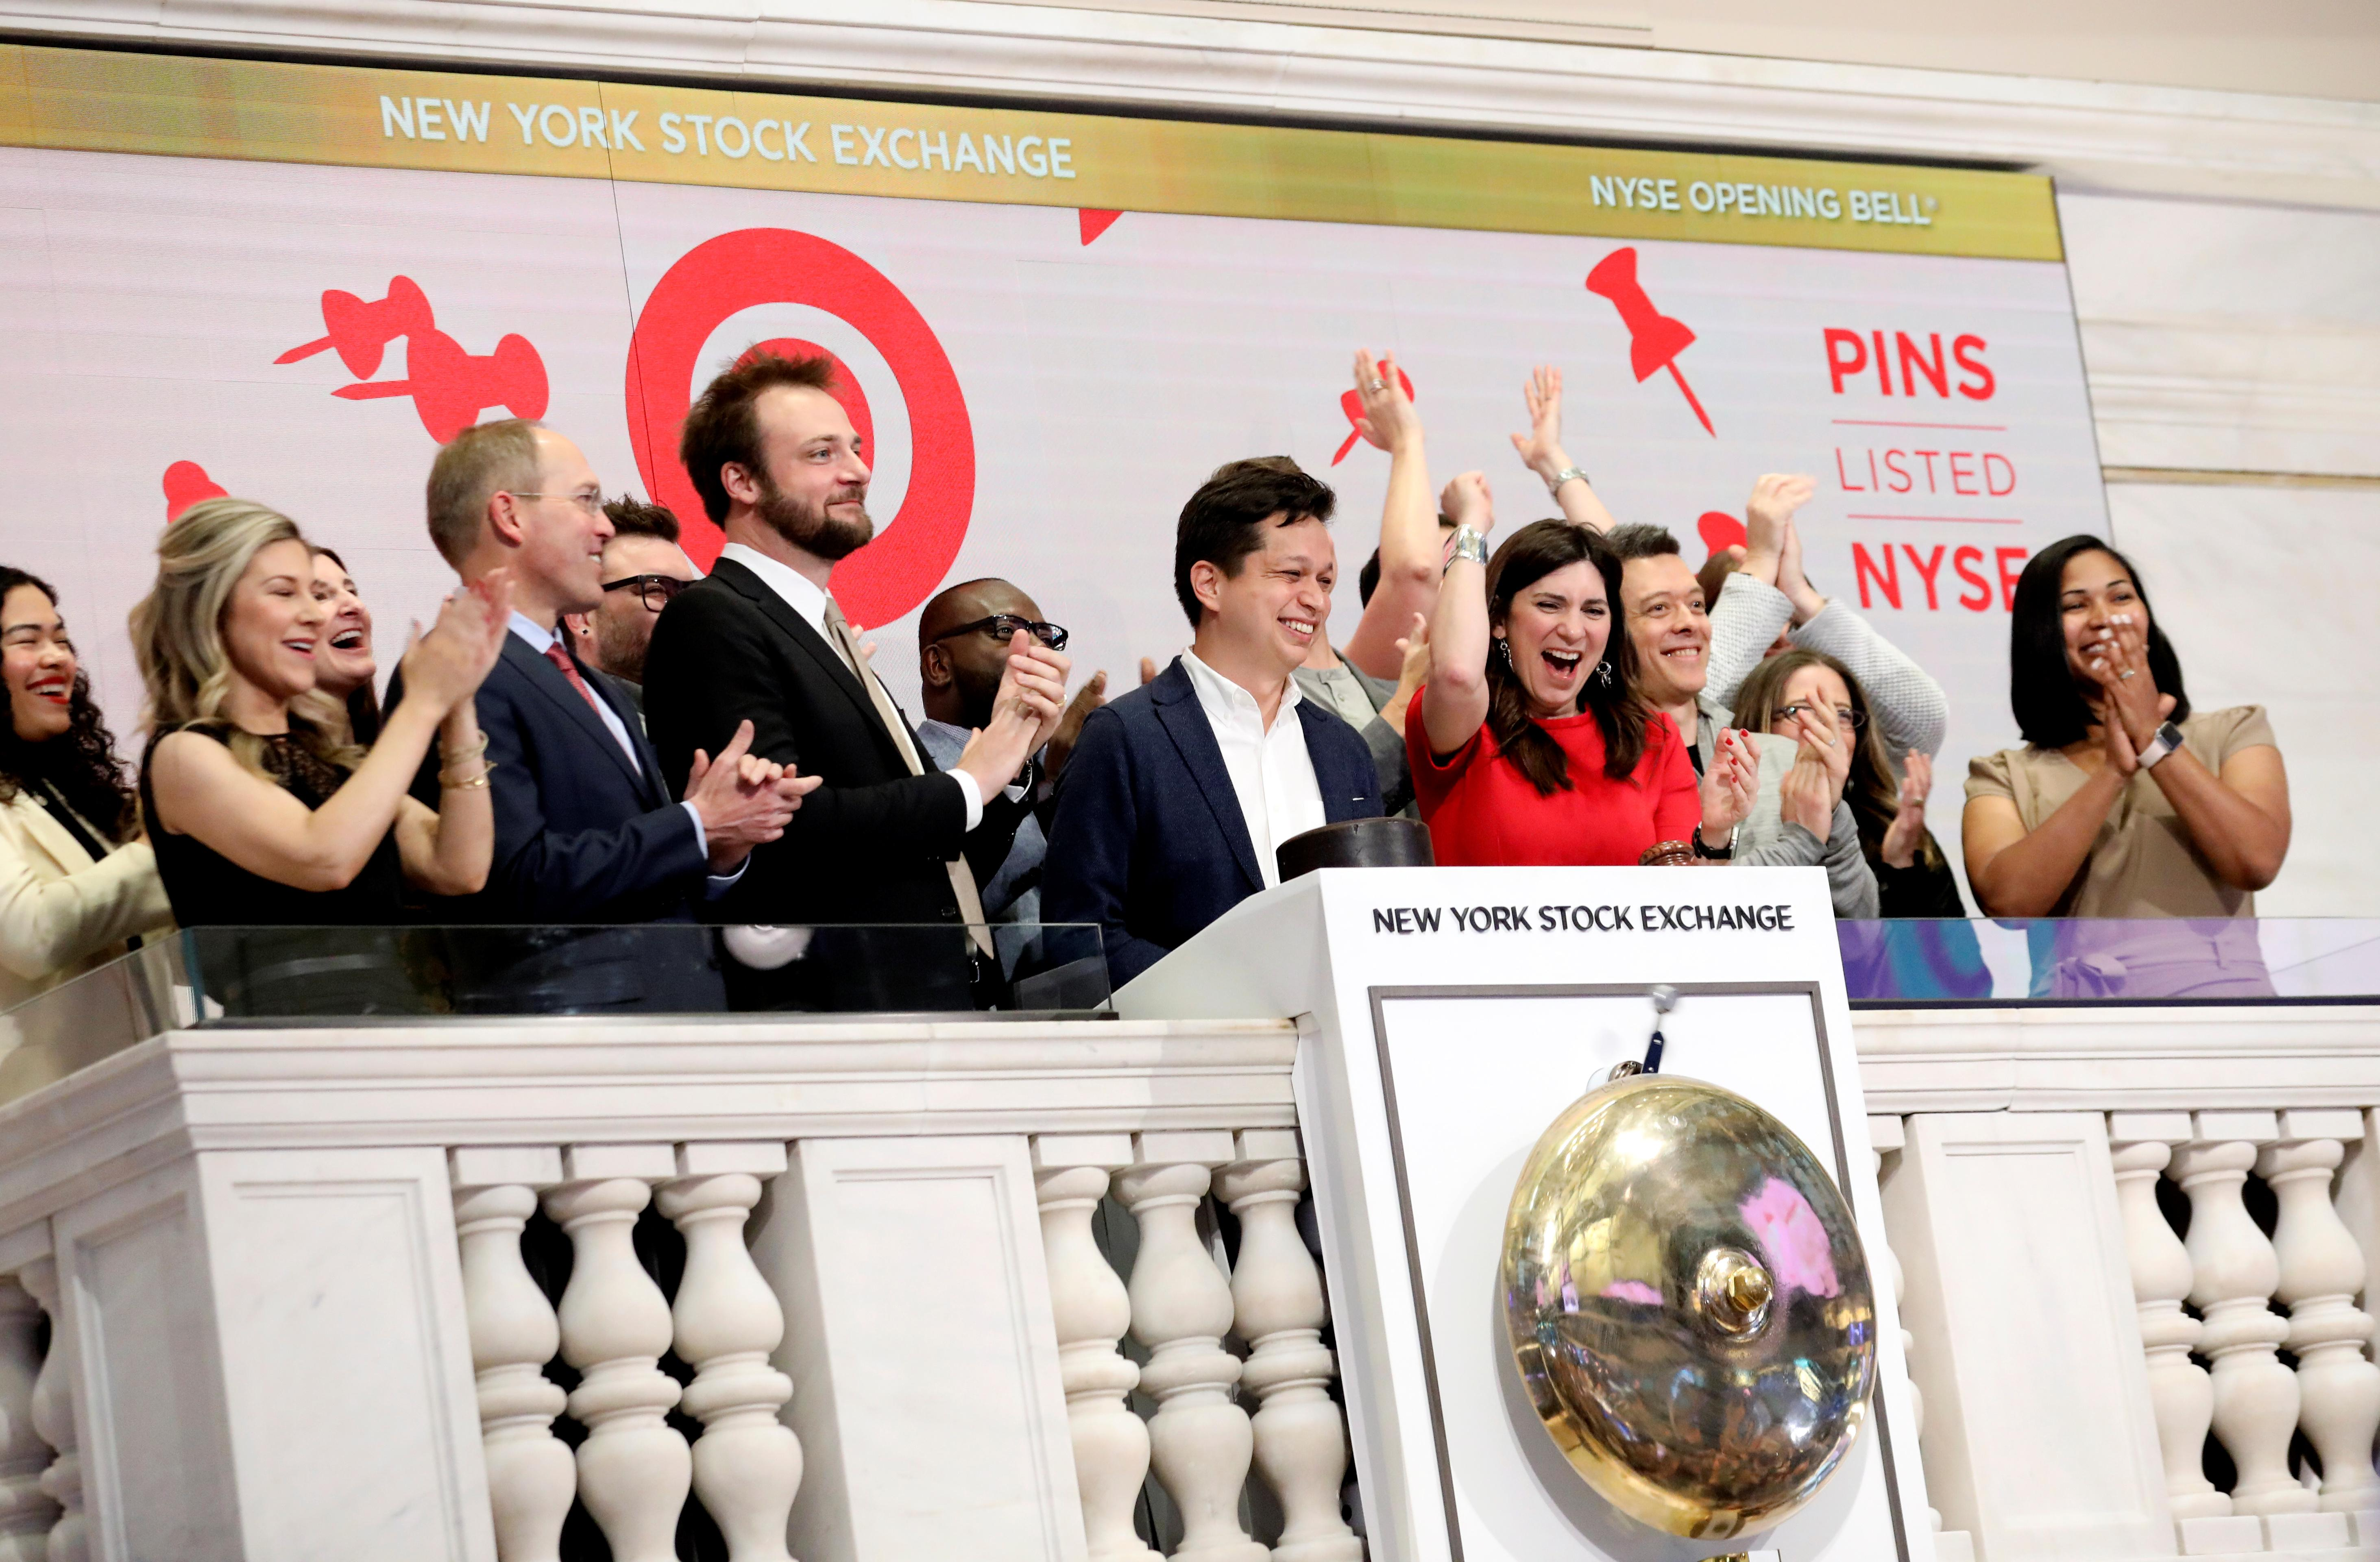 Pinterest, Zoom shares surge in market debuts after IPOs